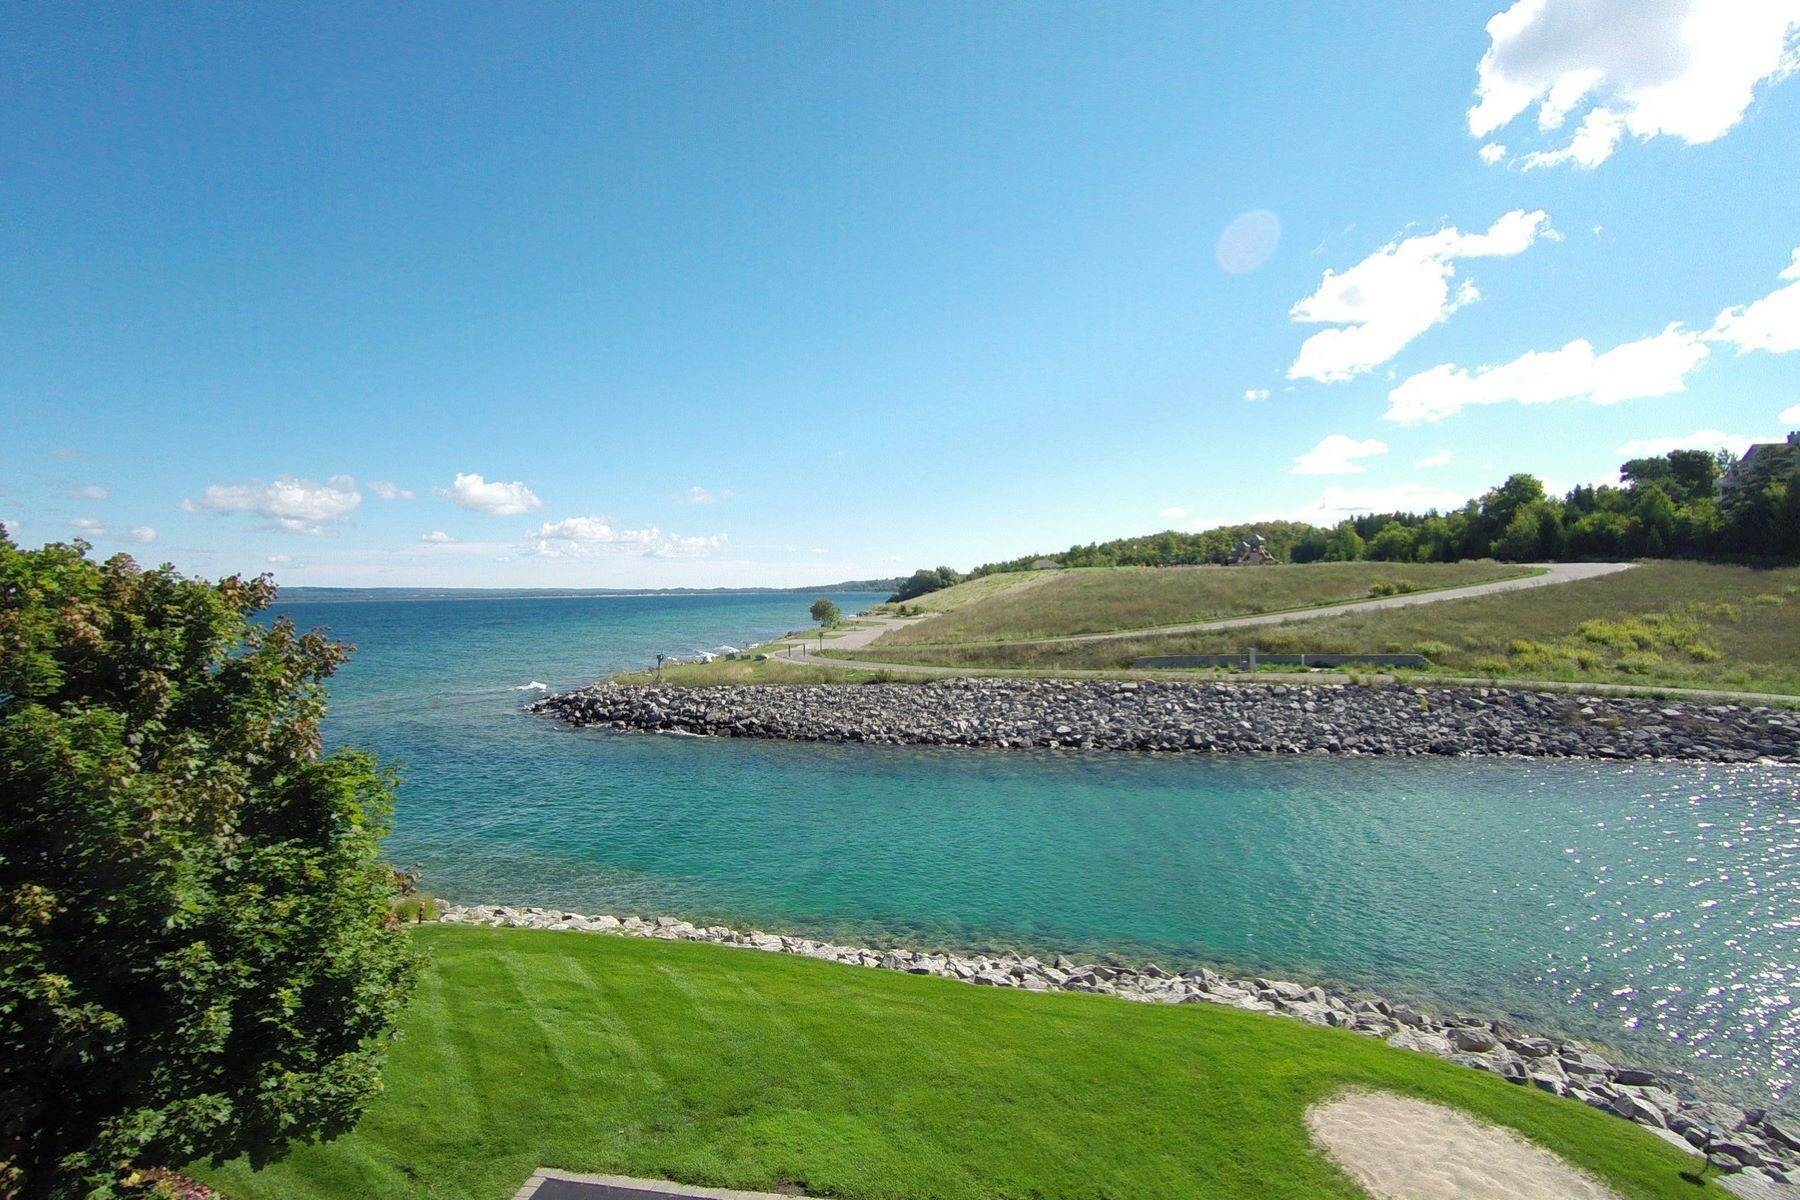 10. Property for Sale at Protected Lake Michigan dock Unit 15 Village Harbor Docks Bay Harbor, Michigan 49770 United States